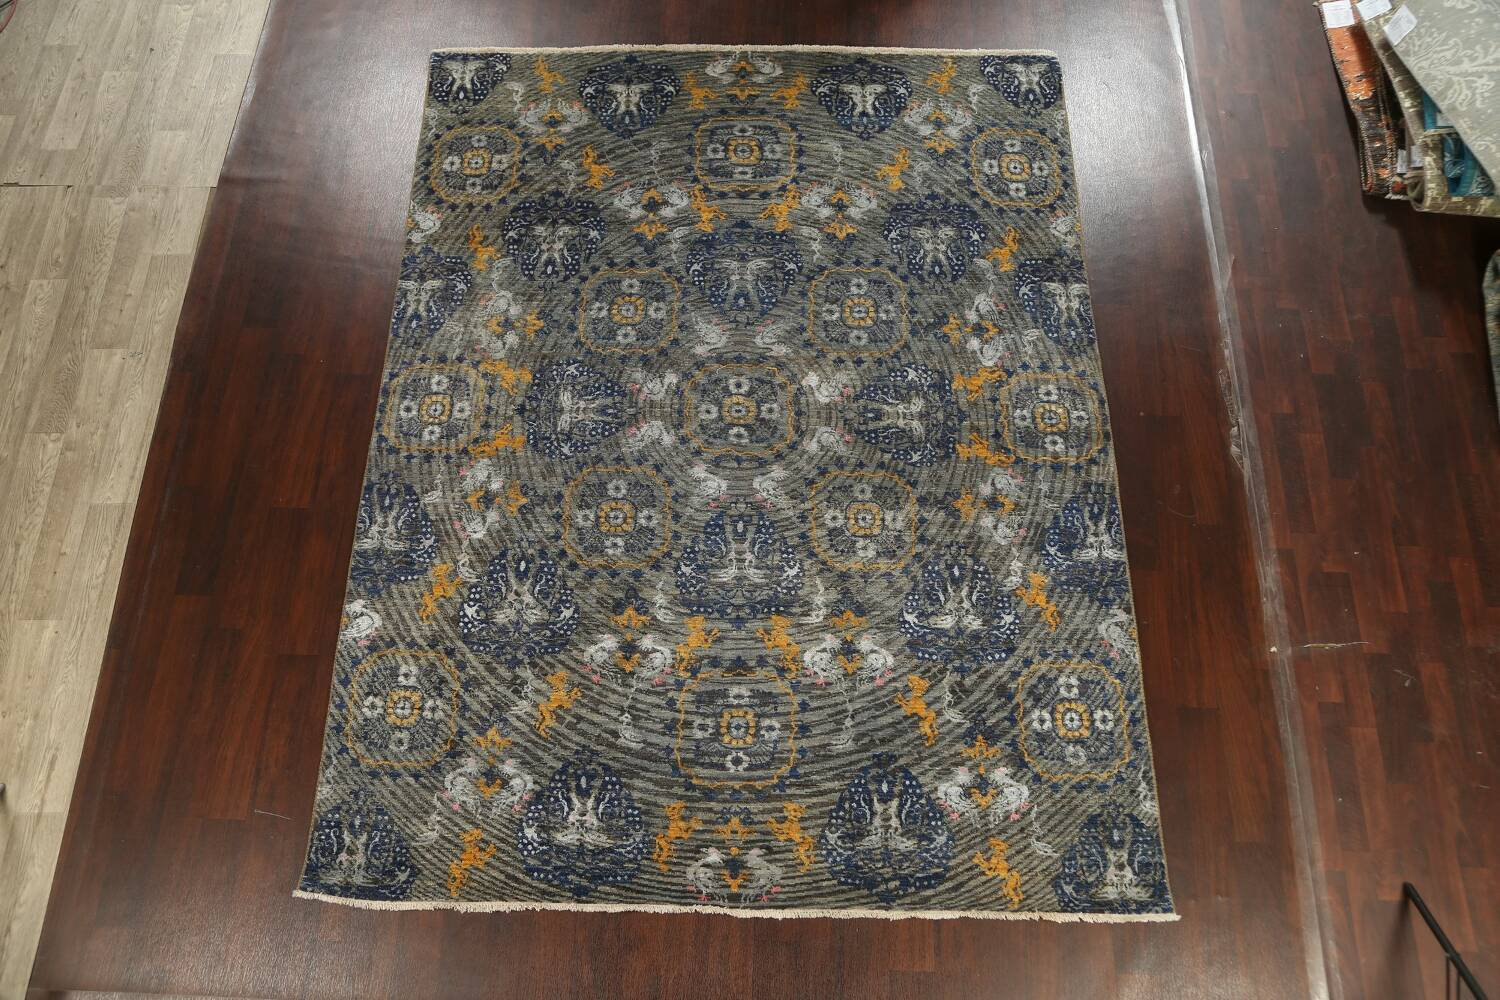 Vegetable Dye Animal Pictorial Abstract Oriental Area Rug 8x11 image 19